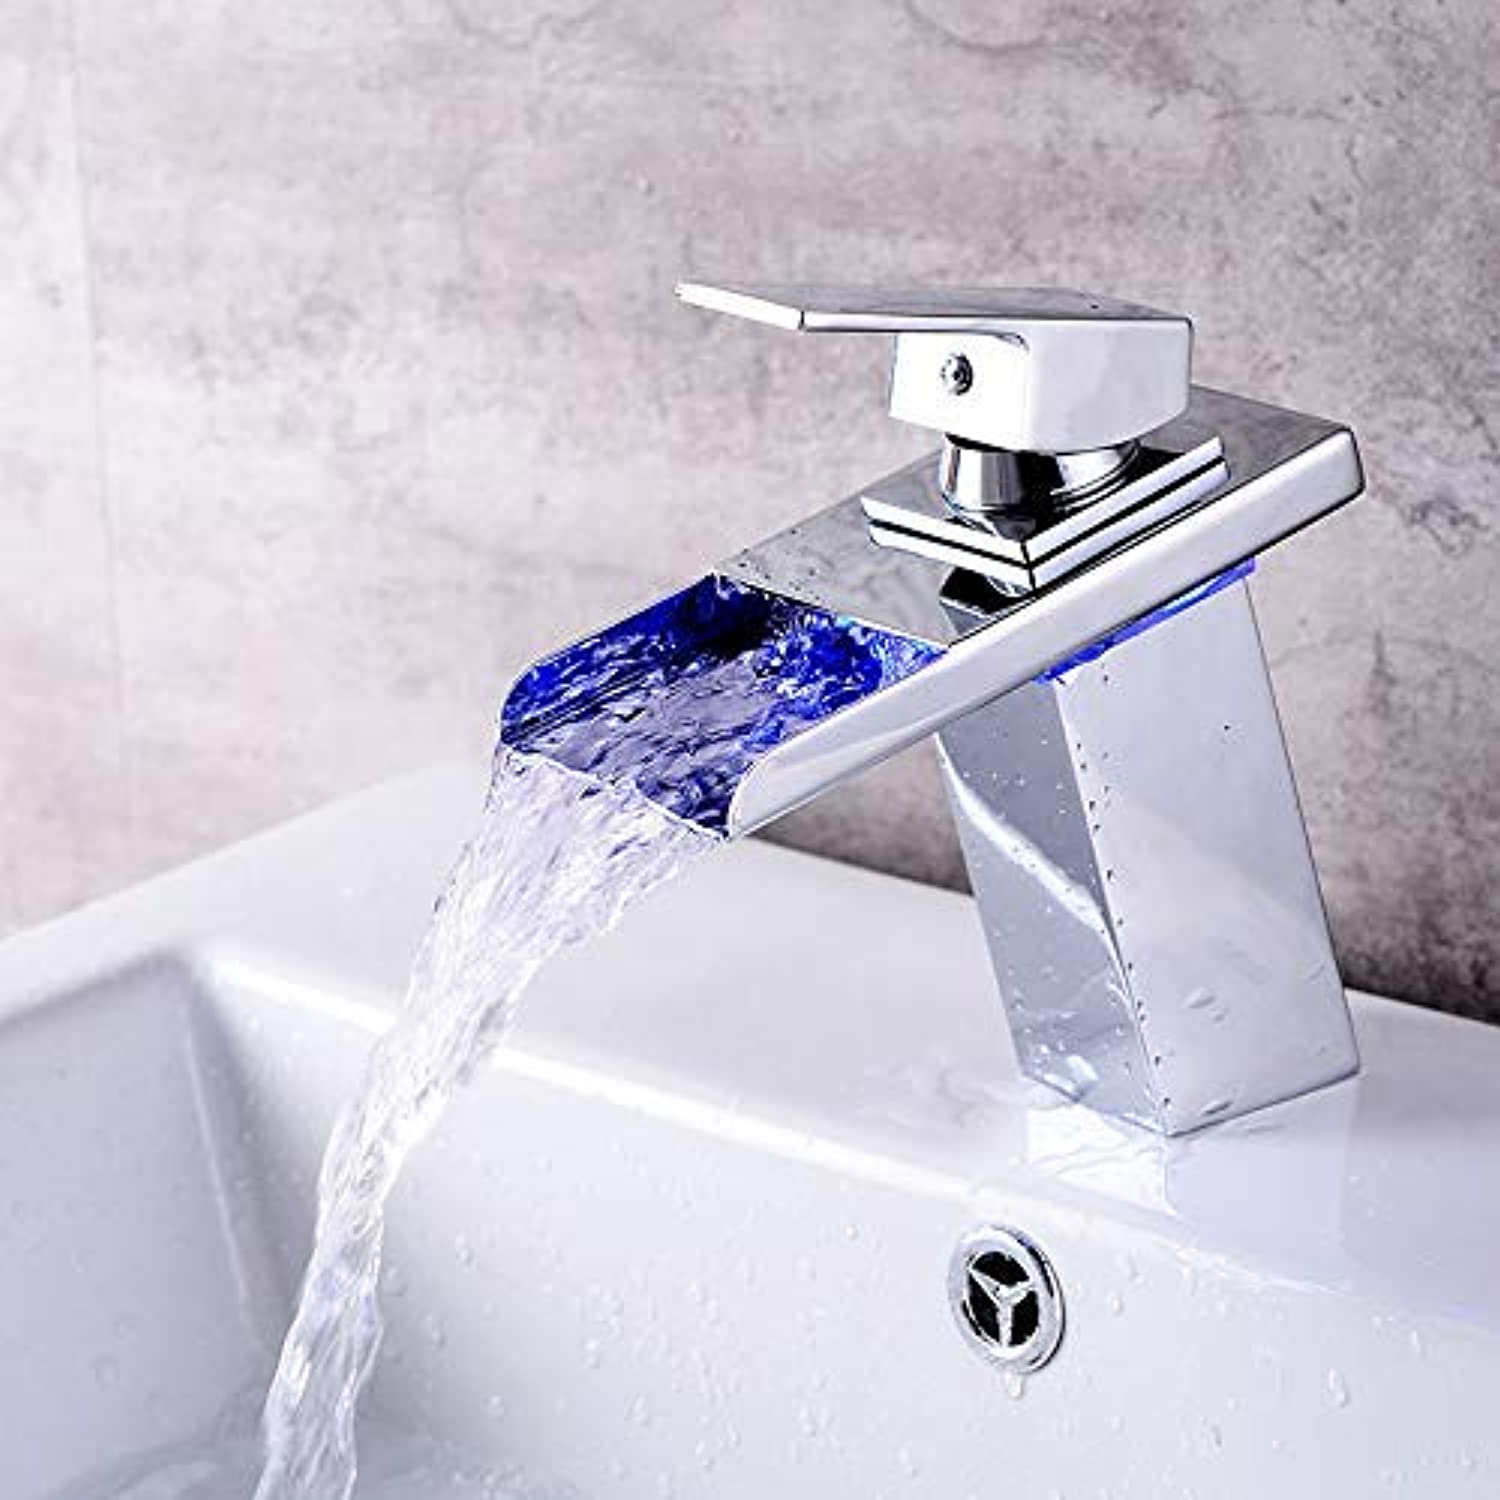 Oudan Taps ?Led?Light Basin Faucet?Copper Waterfall Water Temperature Control color Basin Above Basin Wash Basin Bathroom Faucet Bathroom?? Taps (color   -, Size   -)